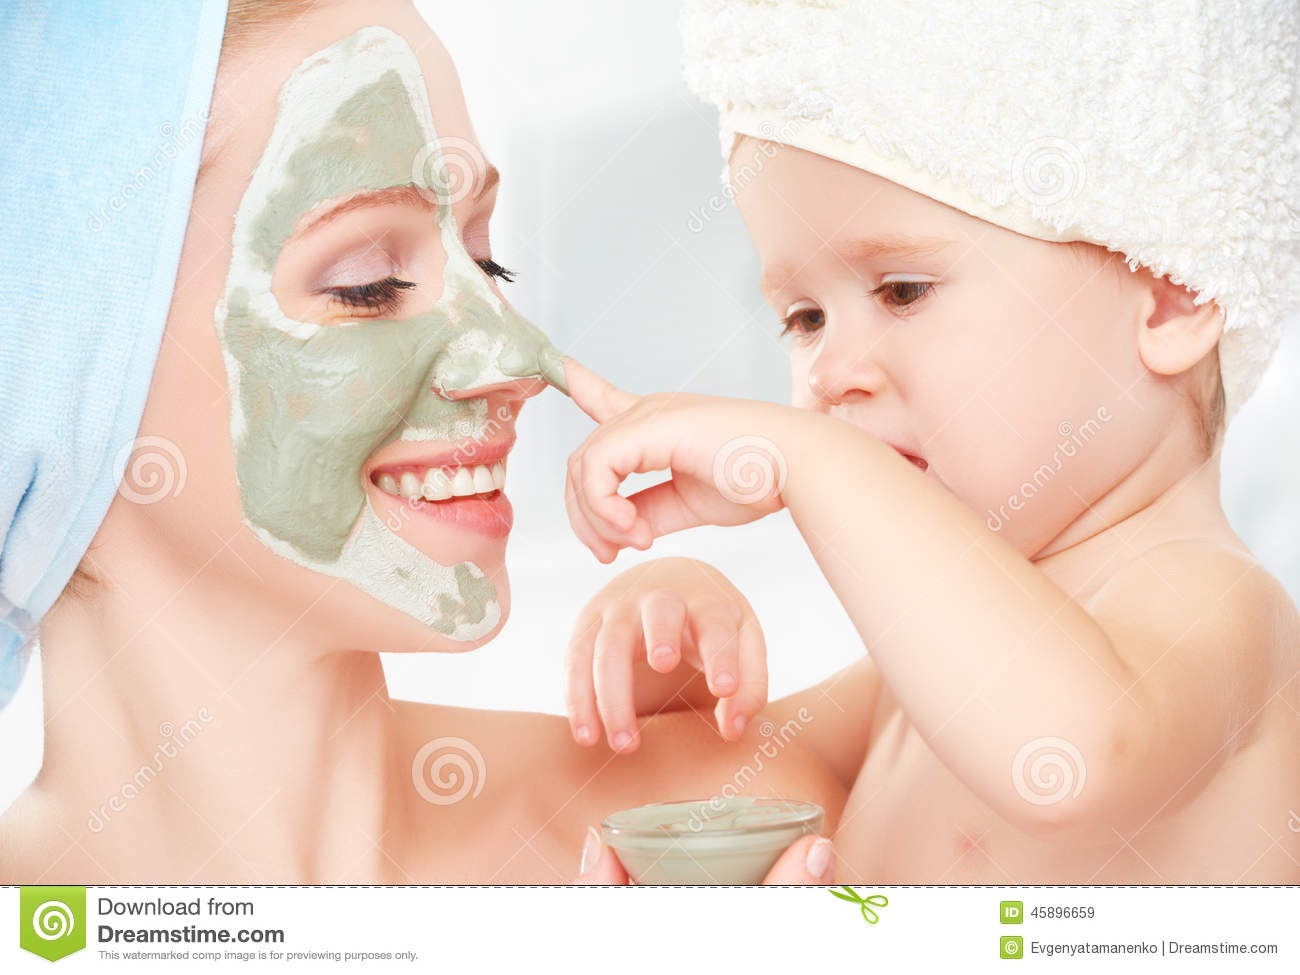 infants on facial treating cuts